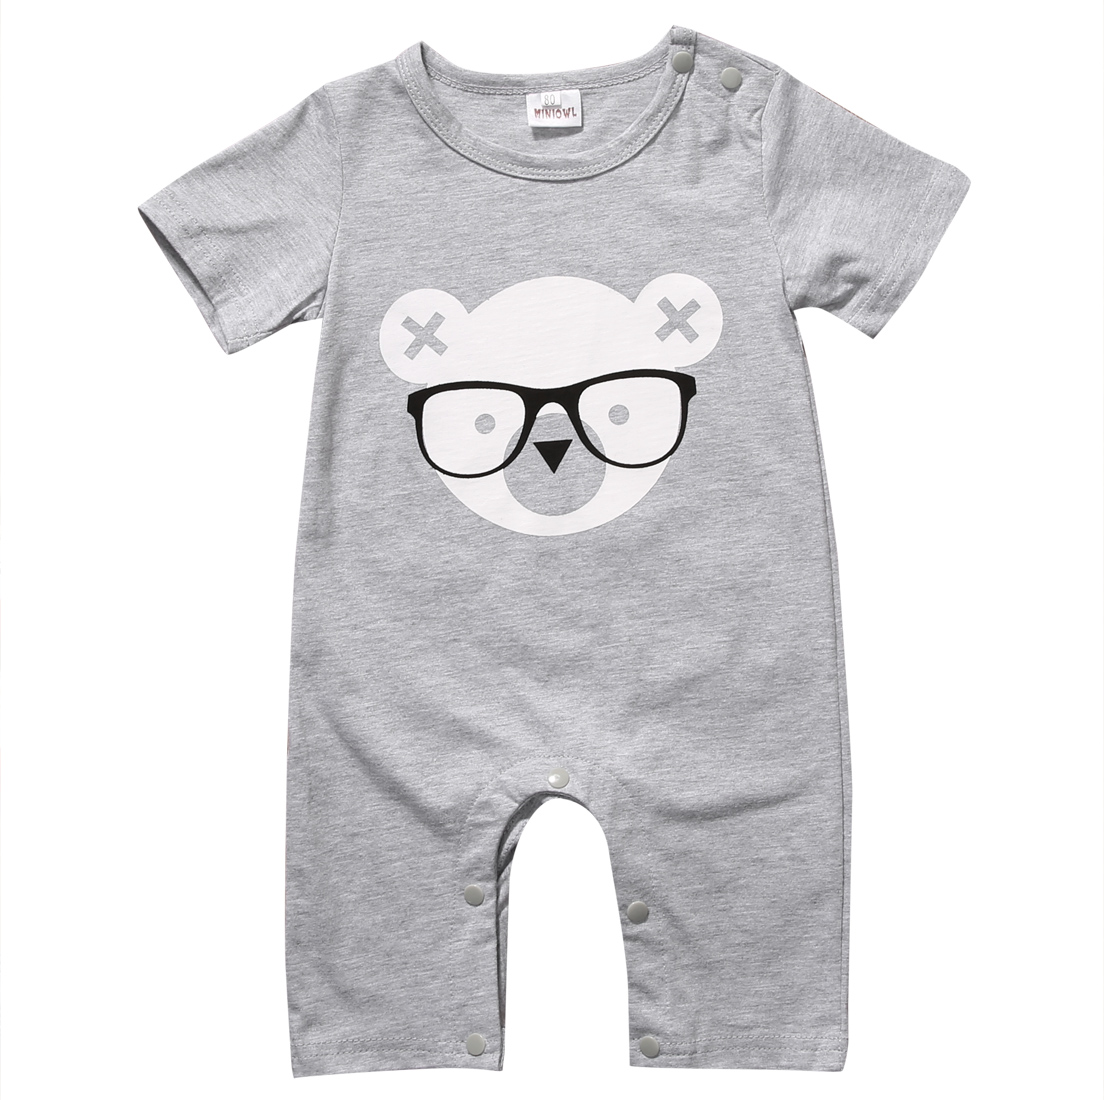 2018 Hot Summer Cute Newborn Baby Boy Girl Romper Short Sleeve Bear Cotton Jumpsuit Toddler Kids Outfits 0-24M newborn cotton cute white with loving heart baby rompers long sleeve soft colorful toddler baby boy girl clothes kids jumpsuit